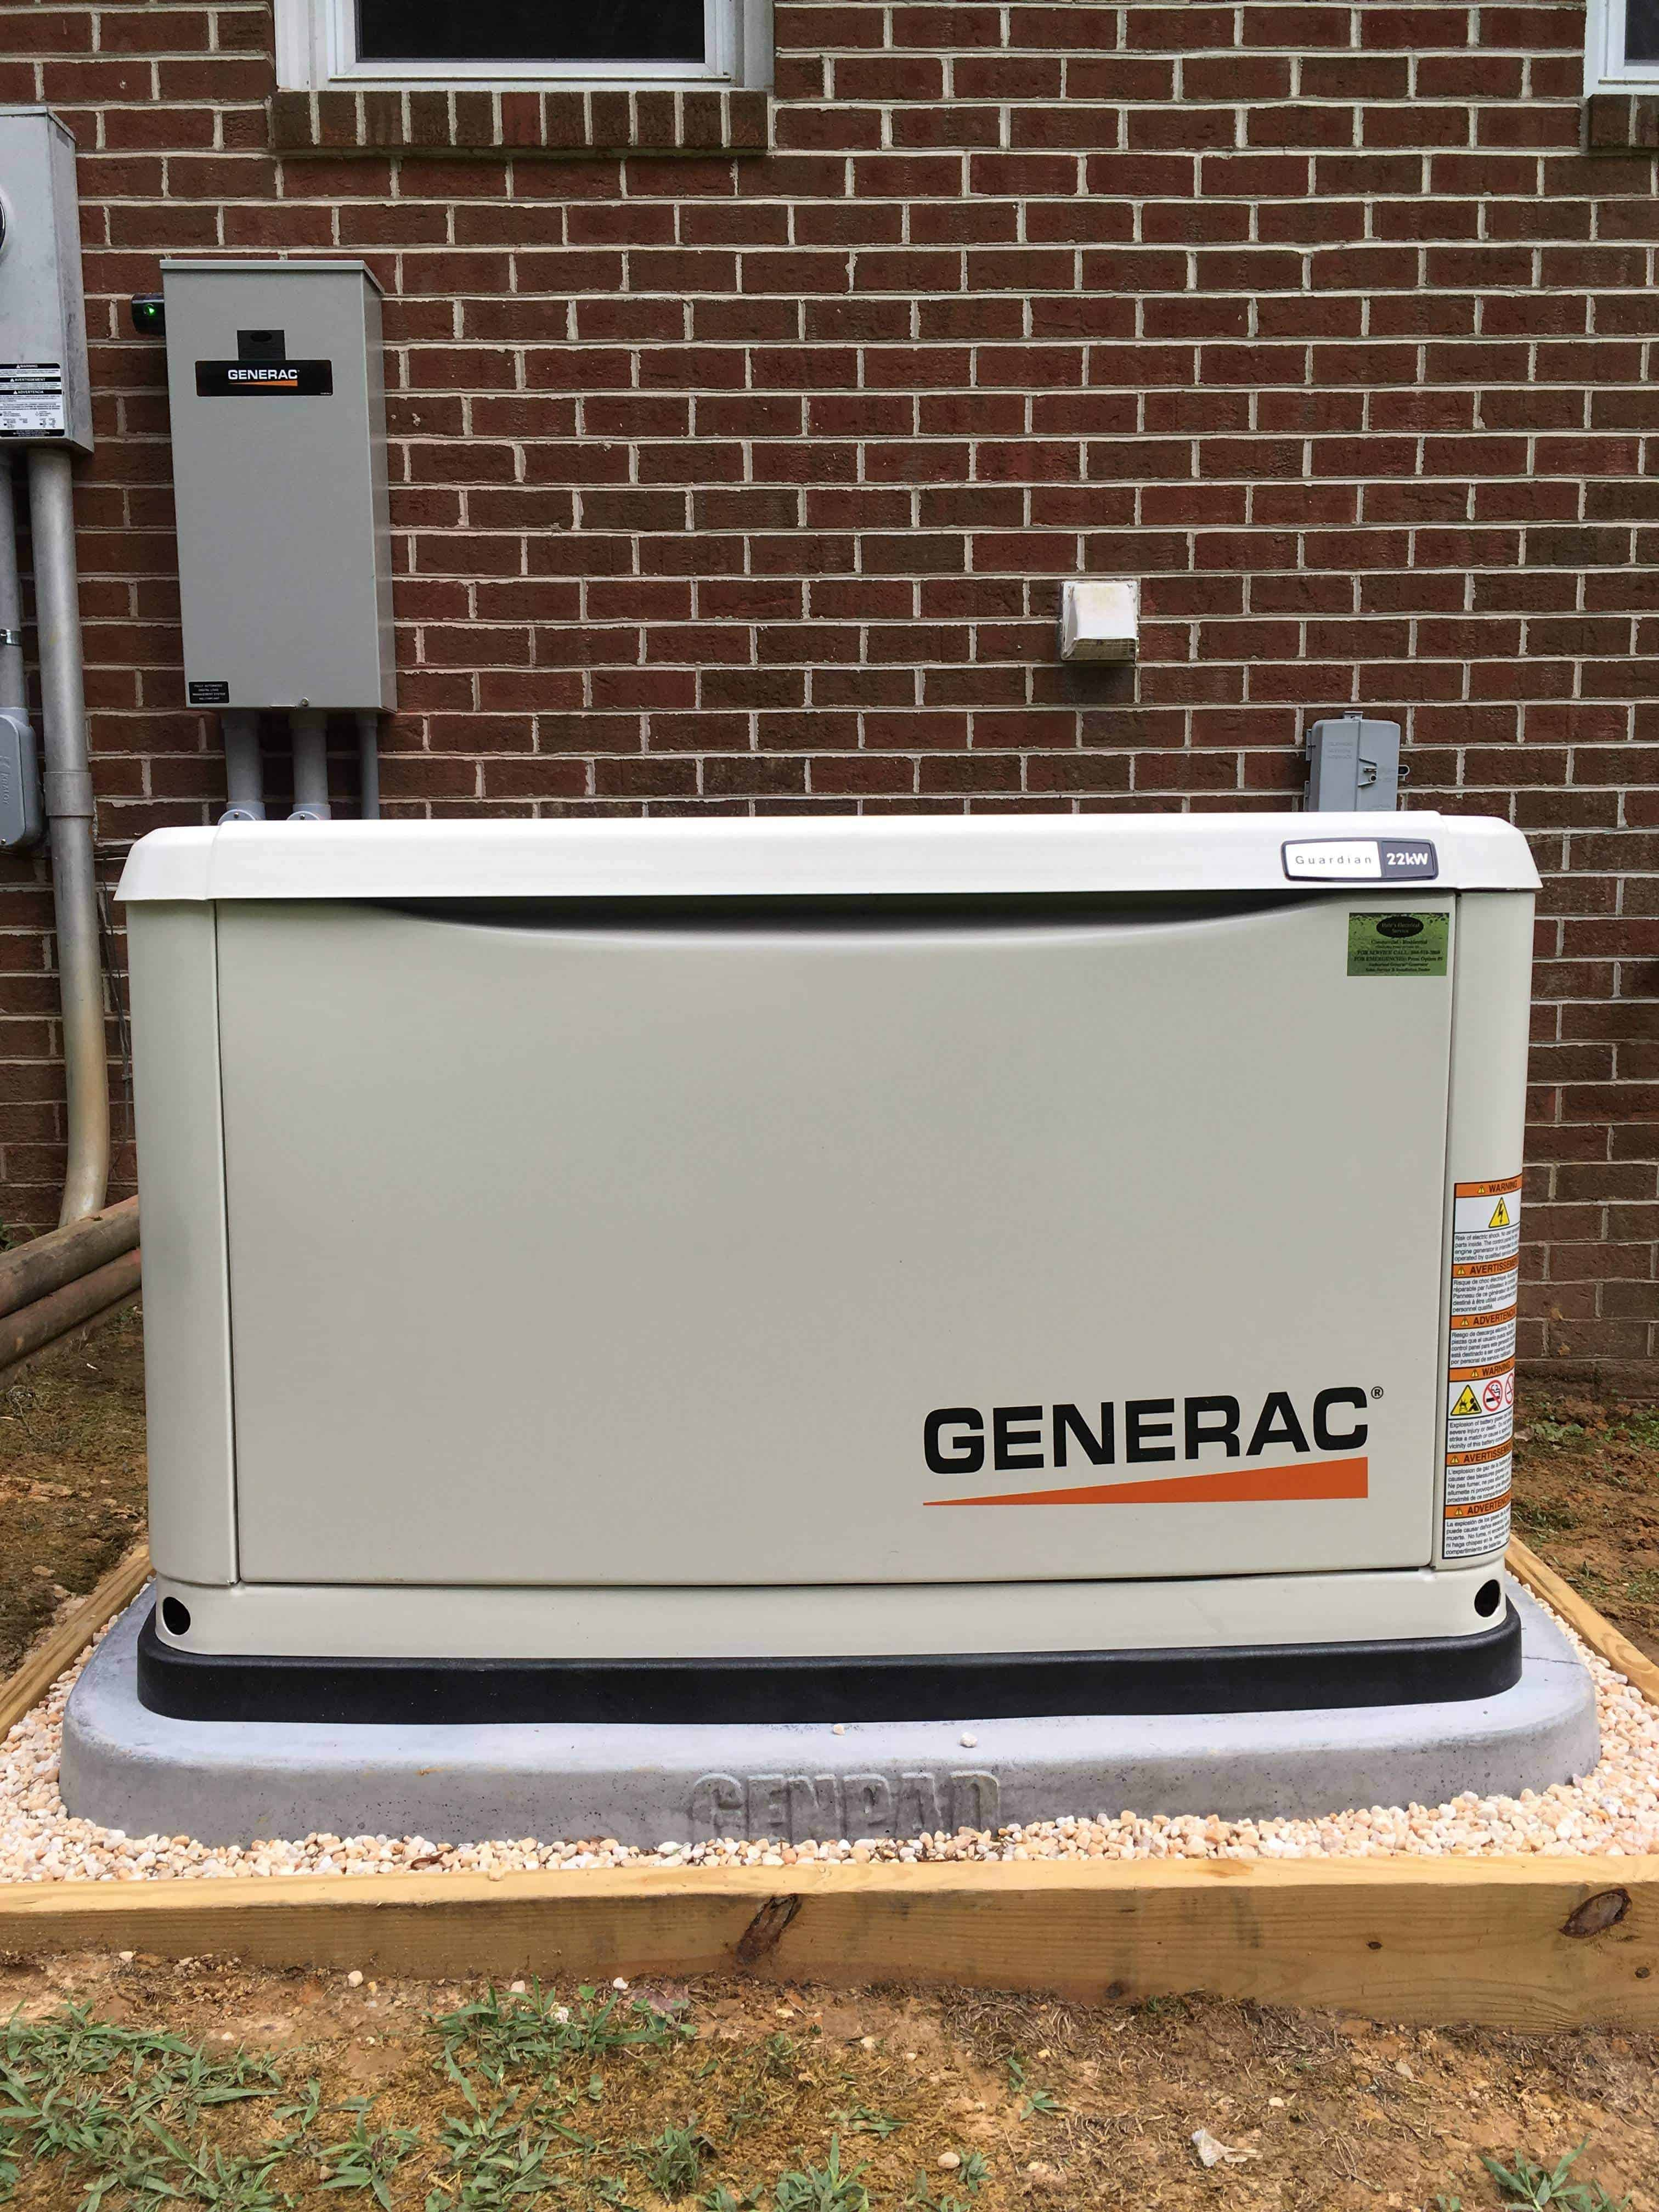 Generac Automatic Standby Generator with Automatic Transfer Switch in Background